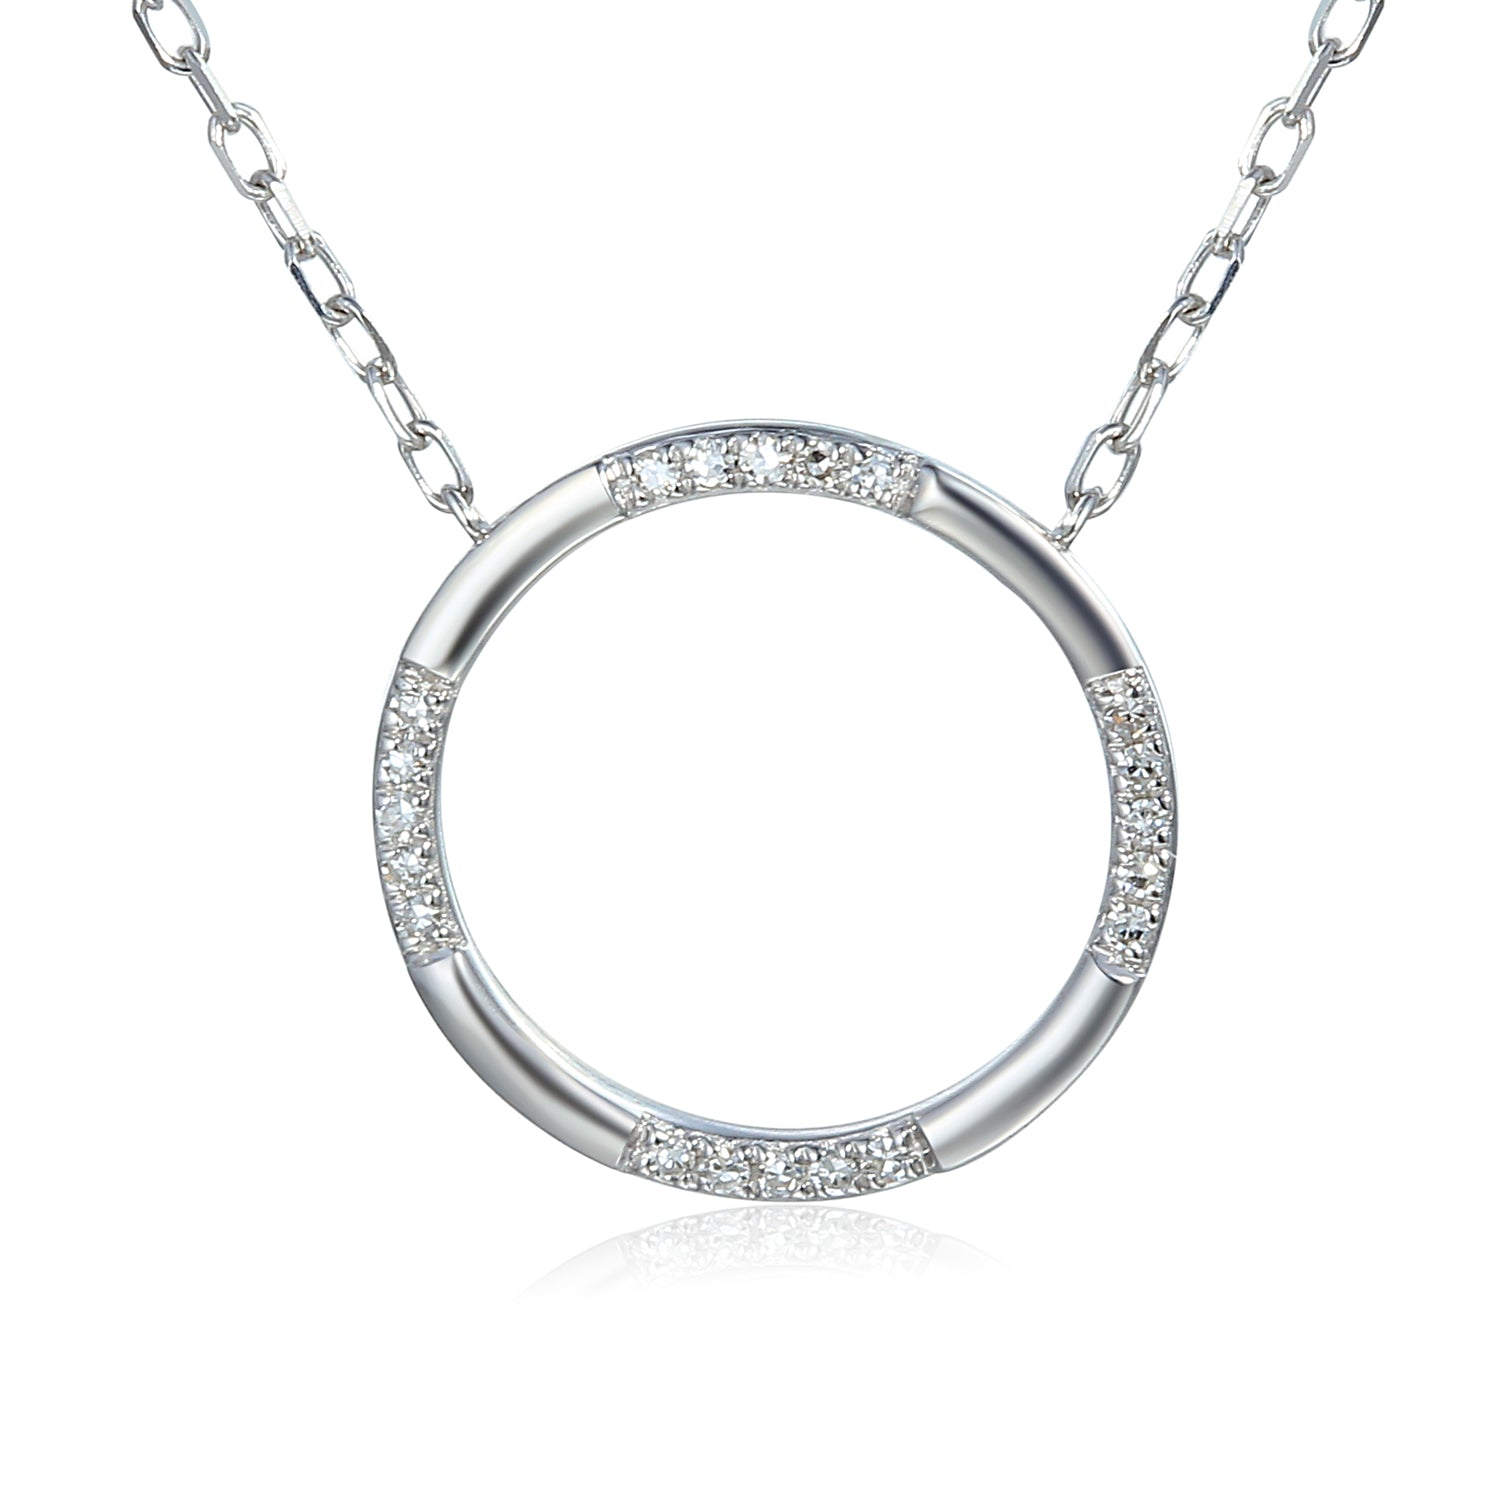 White Gold Scattered Diamond Open Circle Geometric Necklace